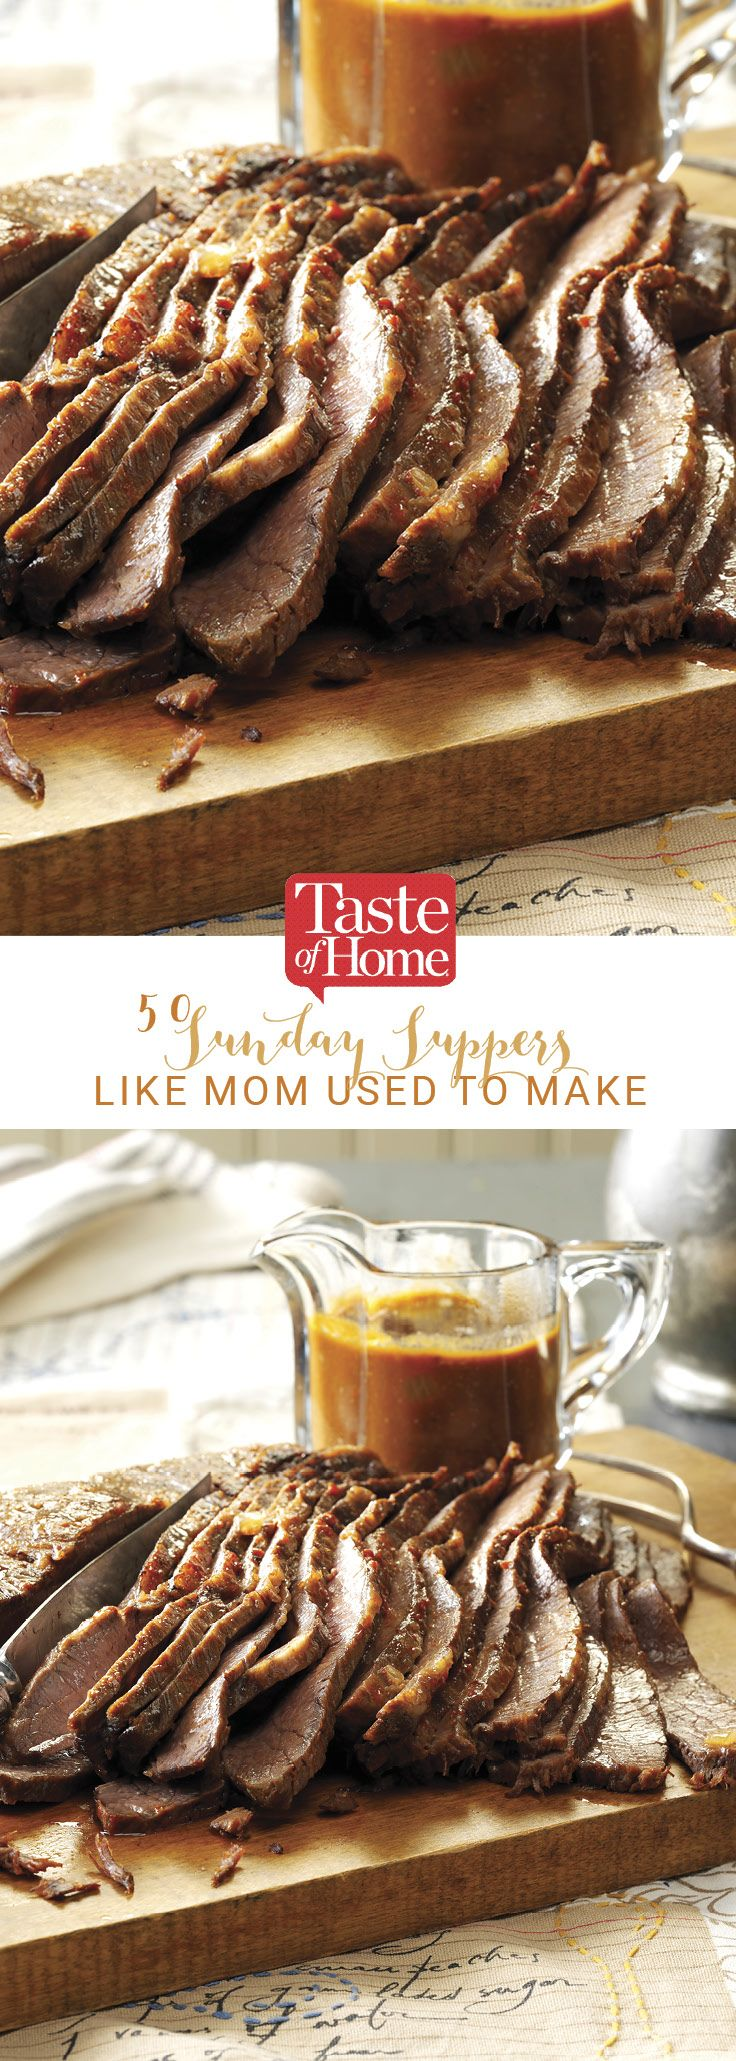 108 best sunday dinners images on pinterest cooking recipes 50 sunday suppers like mom used to make sunday dinner recipessunday forumfinder Choice Image